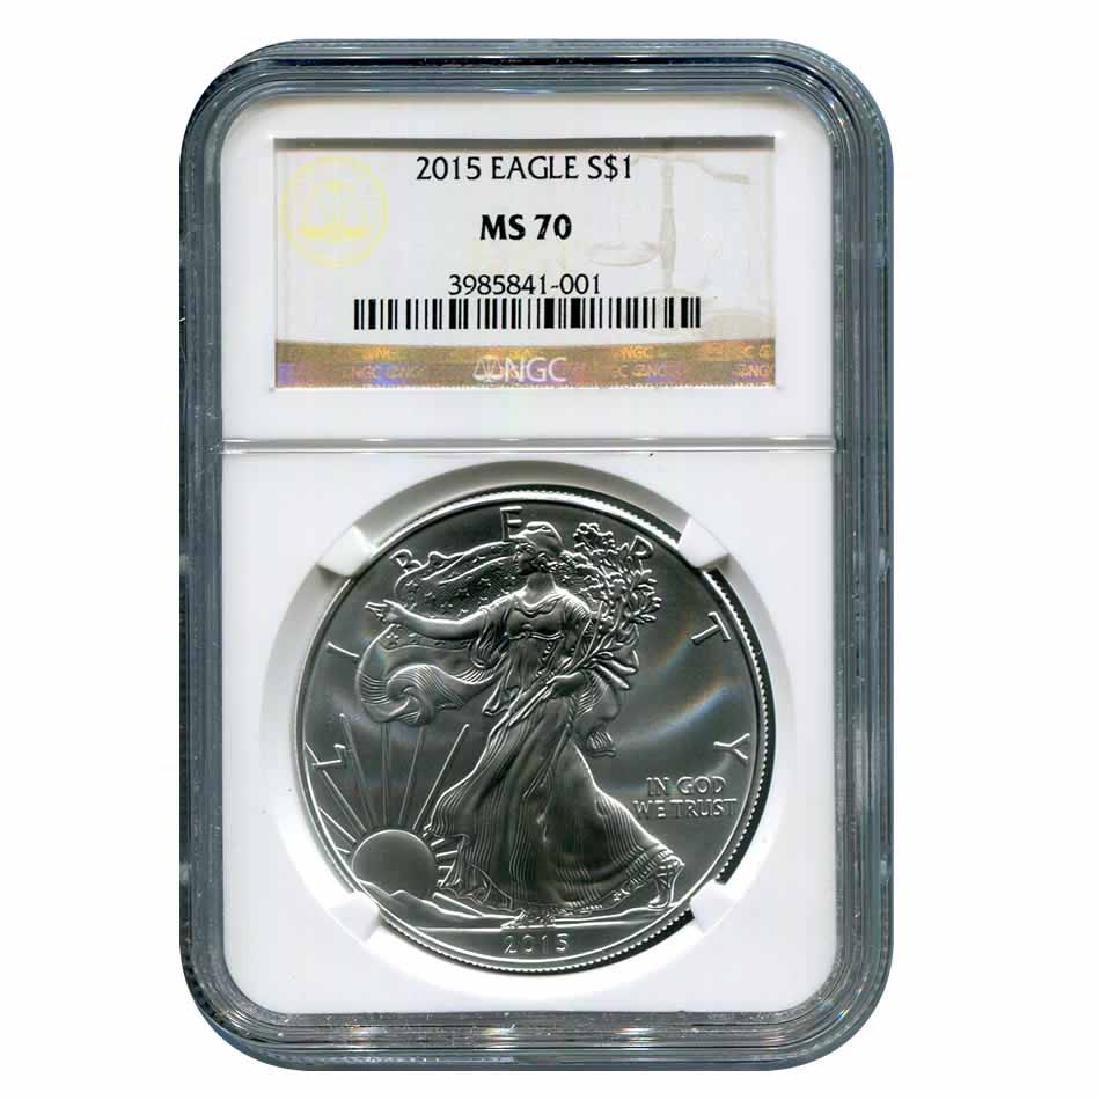 Certified Uncirculated Silver Eagle 2015 MS70 NGC